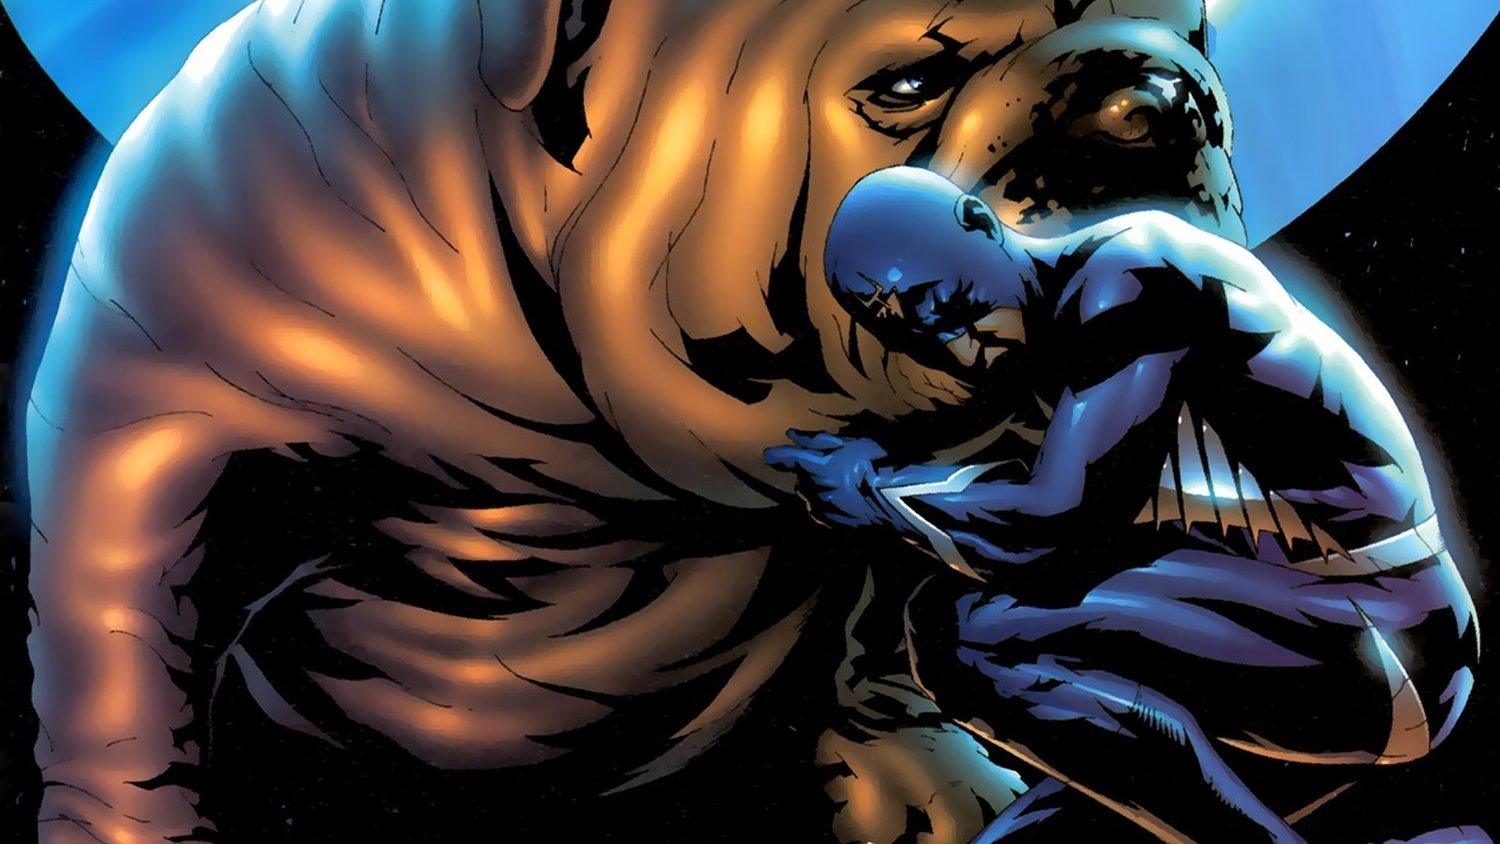 INHUMANS Set Photos and Video Show Anson Mount as Black Bolt Along With Lockjaw